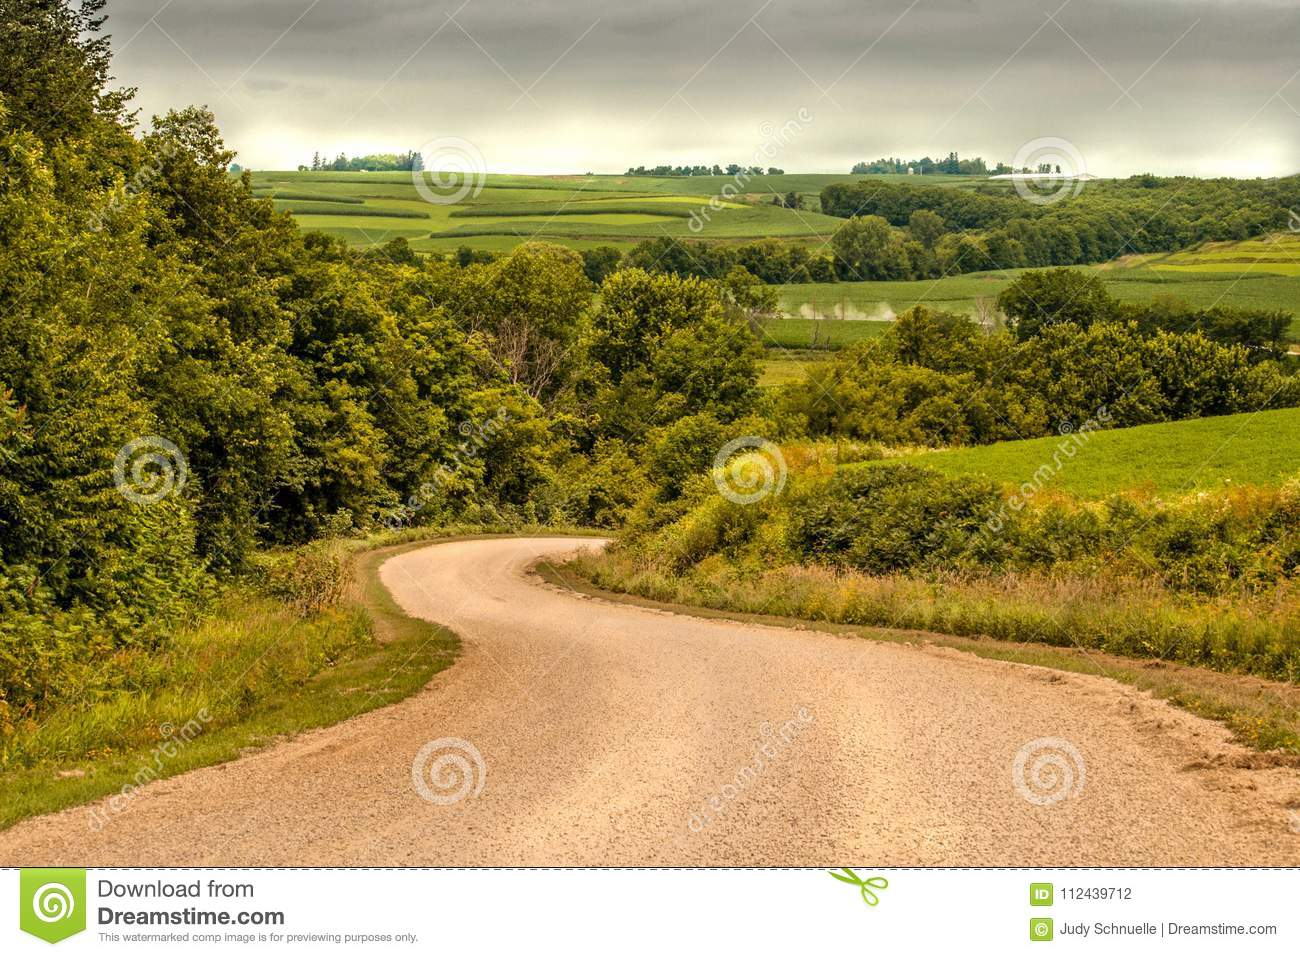 1,624 Winding Country Roads Photos - Free & Royalty-Free Stock Photos from  Dreamstime